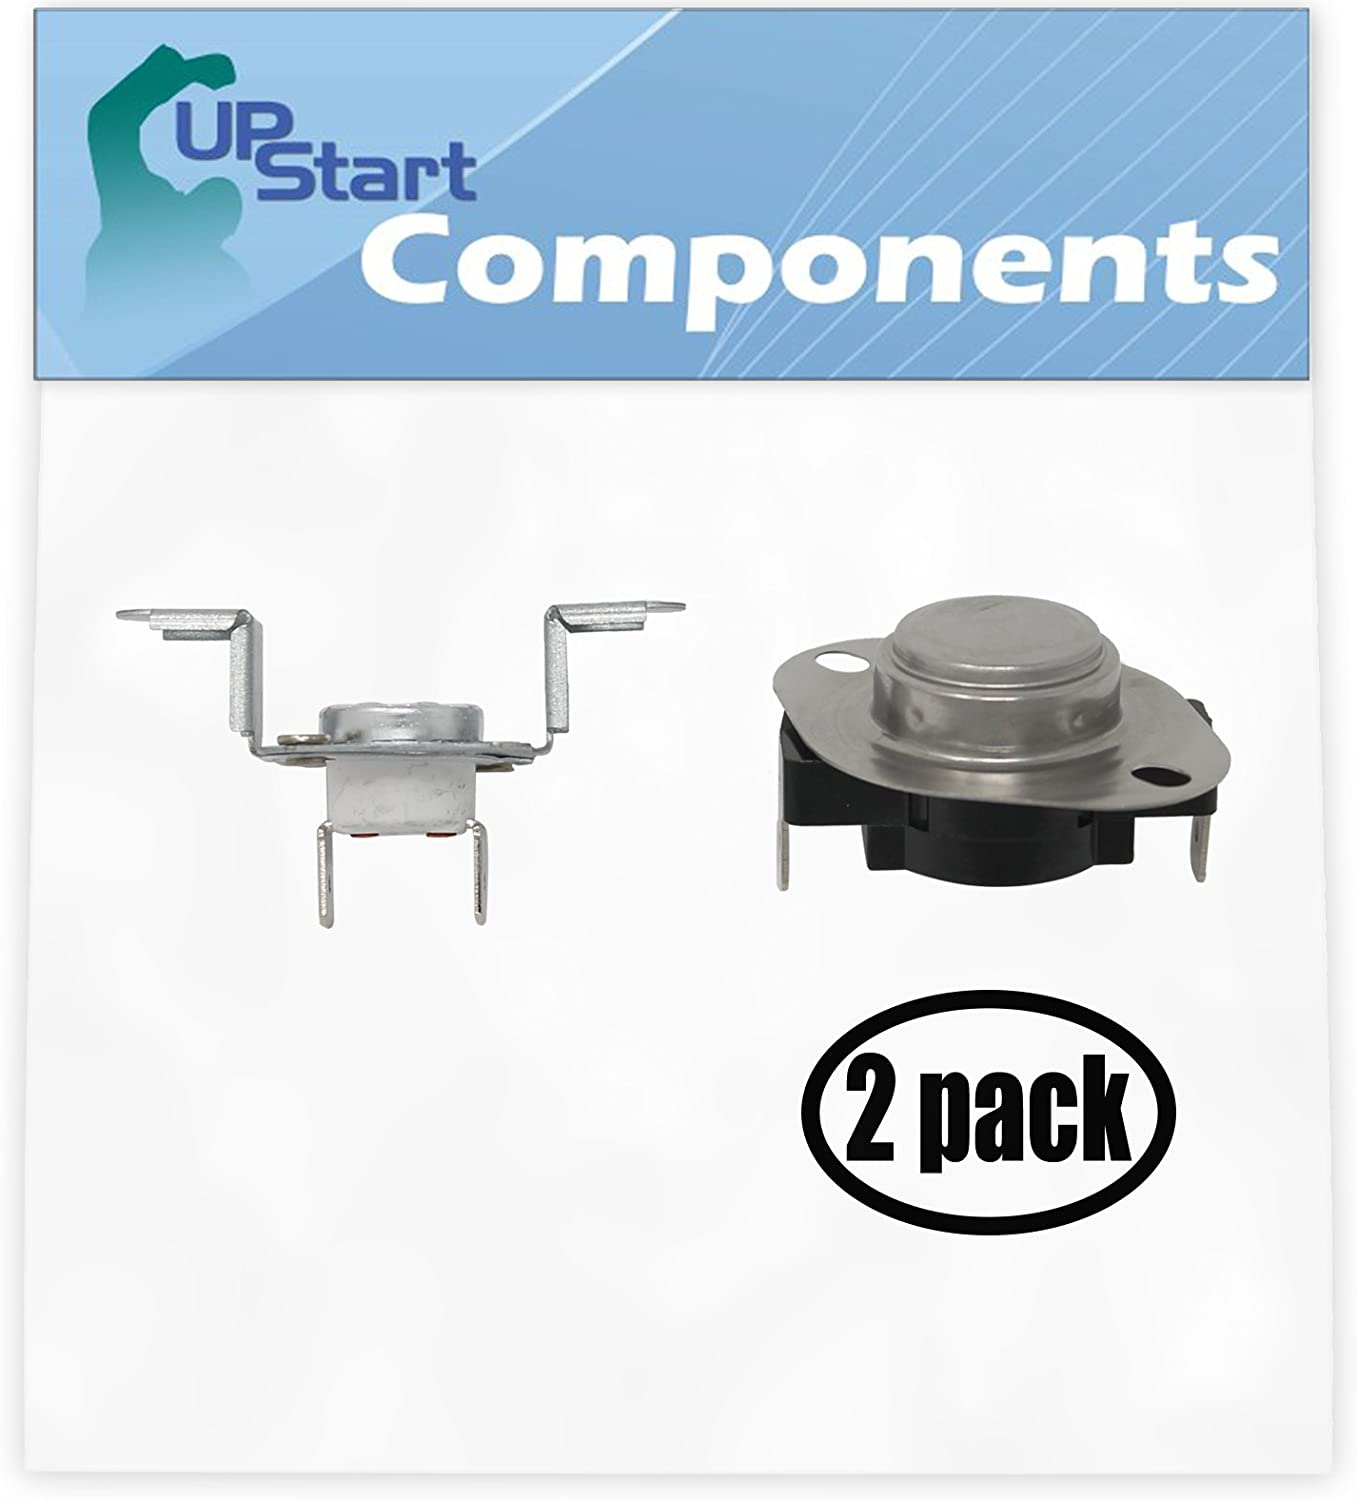 2 Pack Replacement 279973 Thermostat and Thermal Cut-Off Kit for Whirlpool WED9750WW0 27